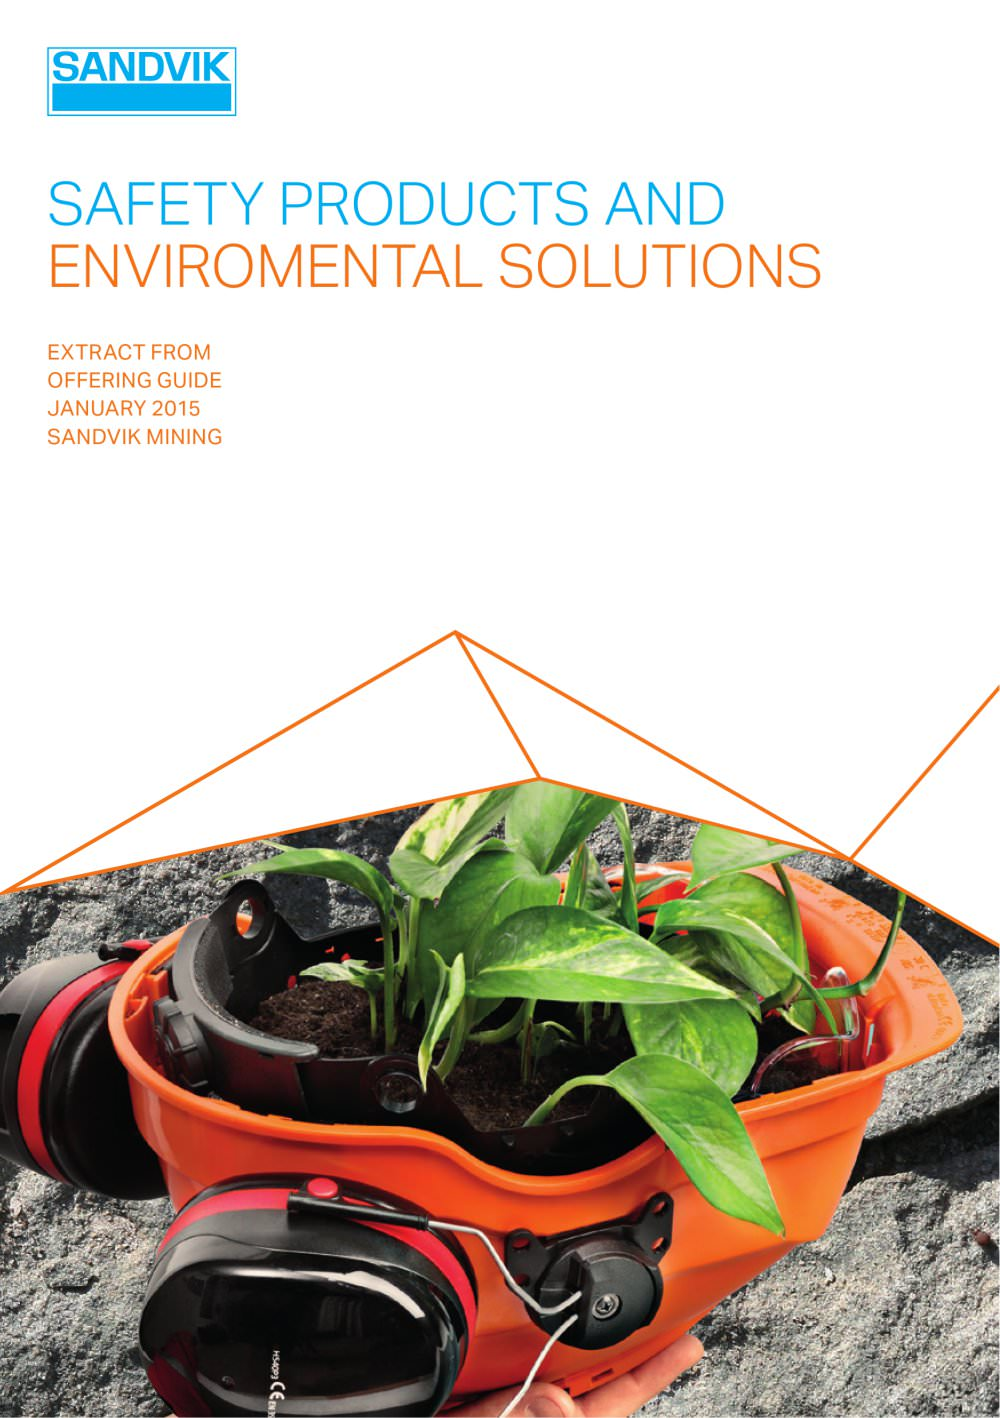 Sandvik safety and environmental products - 1 / 12 Pages